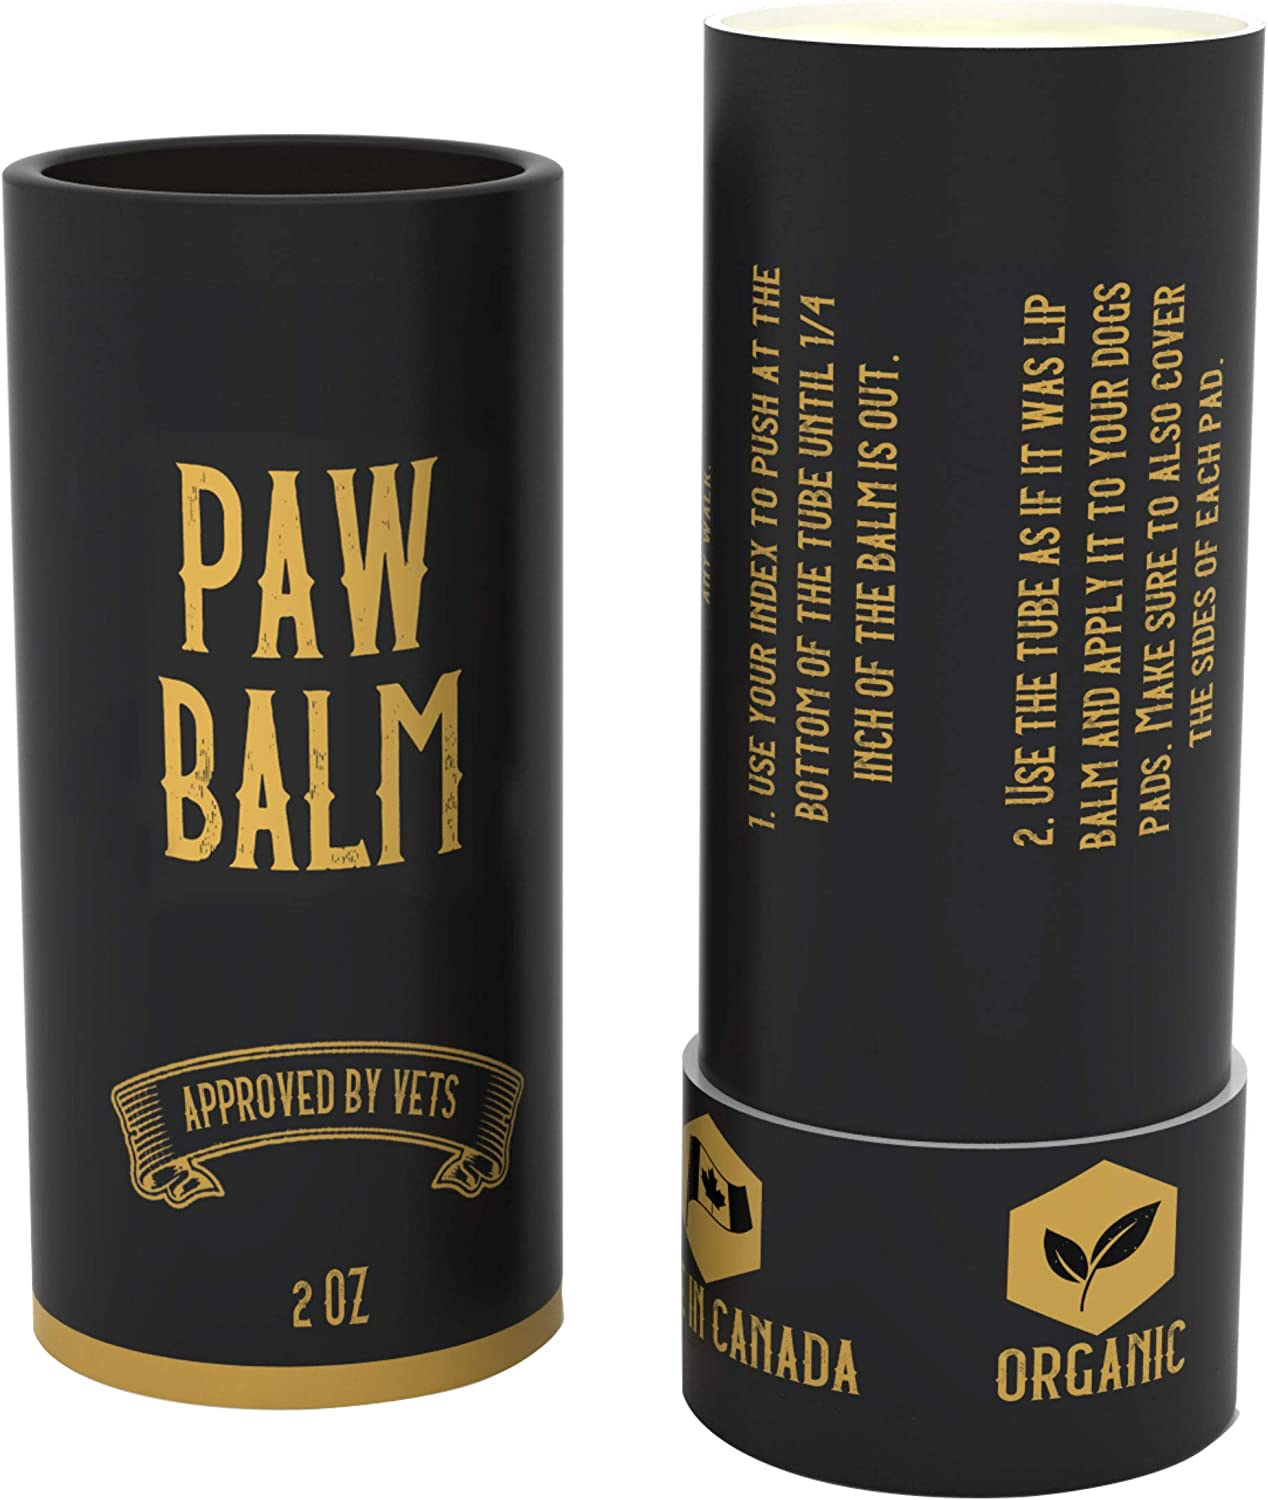 SÄKER Handmade Organic Dog Paw Balm - The Most Advanced All Natural Protection Against Cold & Chemicals in Ice Salt. Made in Canada. Our Dog Paw Wax can heal Dry and Cracked paw Pads